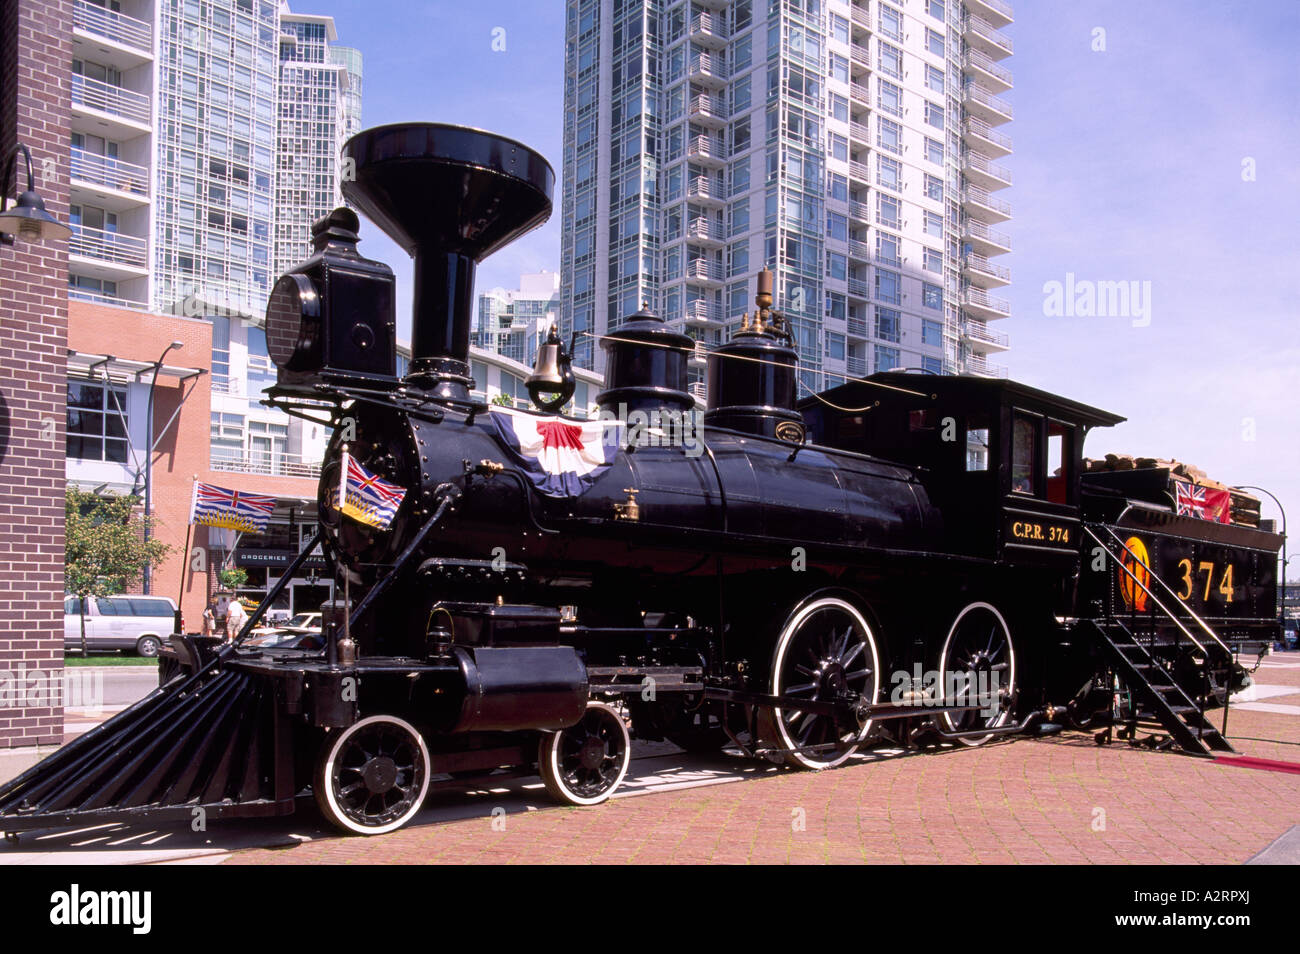 Historic CPR Engine 374 restored and located at the Roundhouse in Downtown Vancouver British Columbia Canada Stock Photo